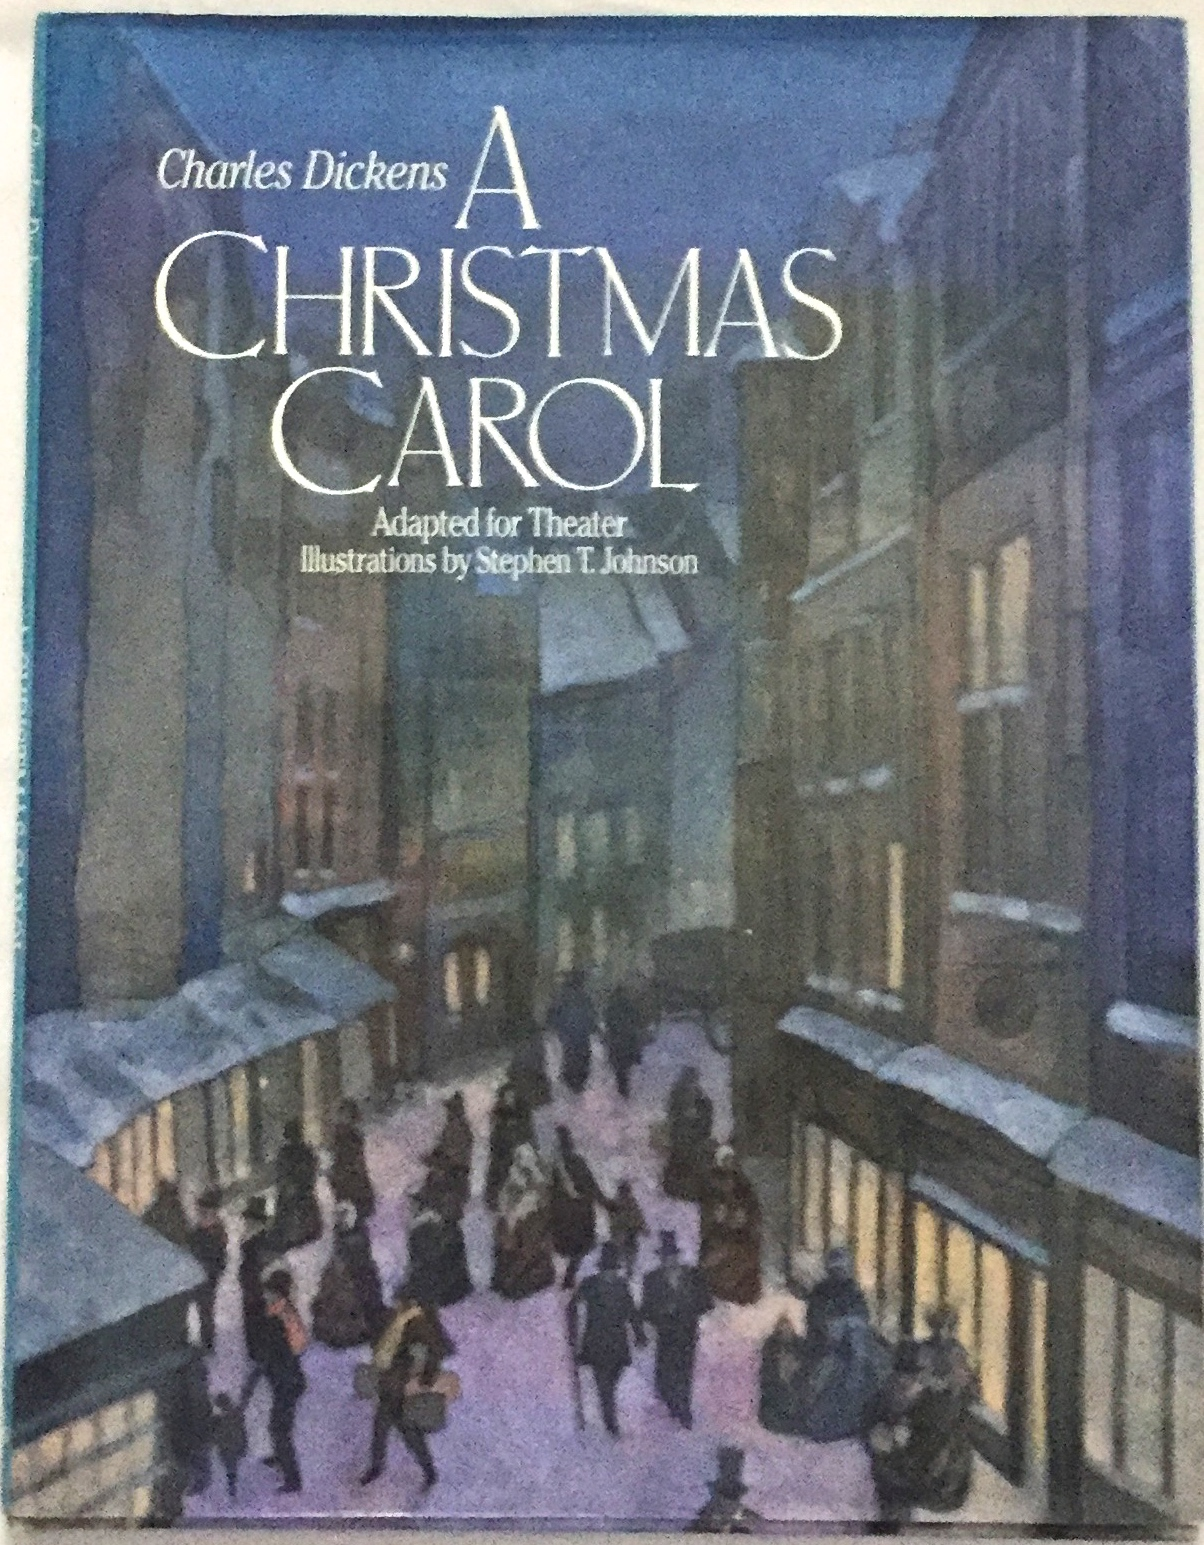 A Christmas Carol Book Cover.A Christmas Carol Adapted For Theater Preface By Garland Wright Artistic Director The Guthrie Theater Illustrations By Stephen T Johnson By